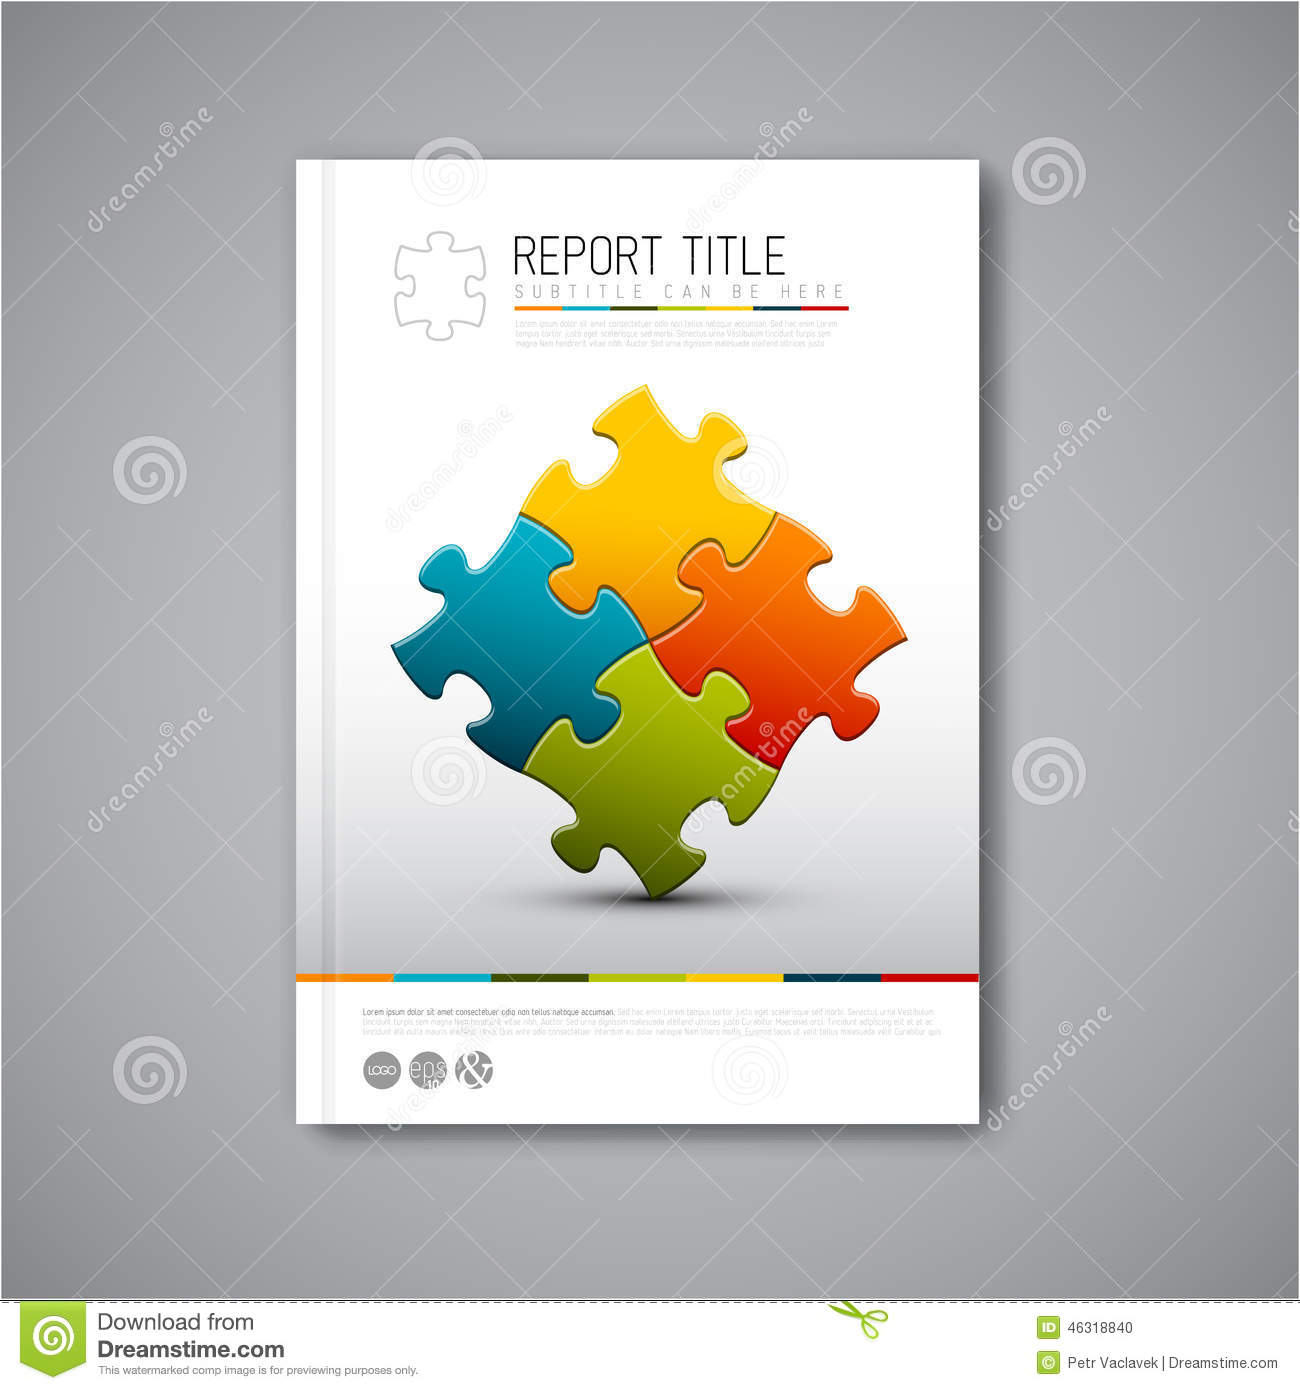 Modern Vector Abstract Brochure Report Design Template Stock ...